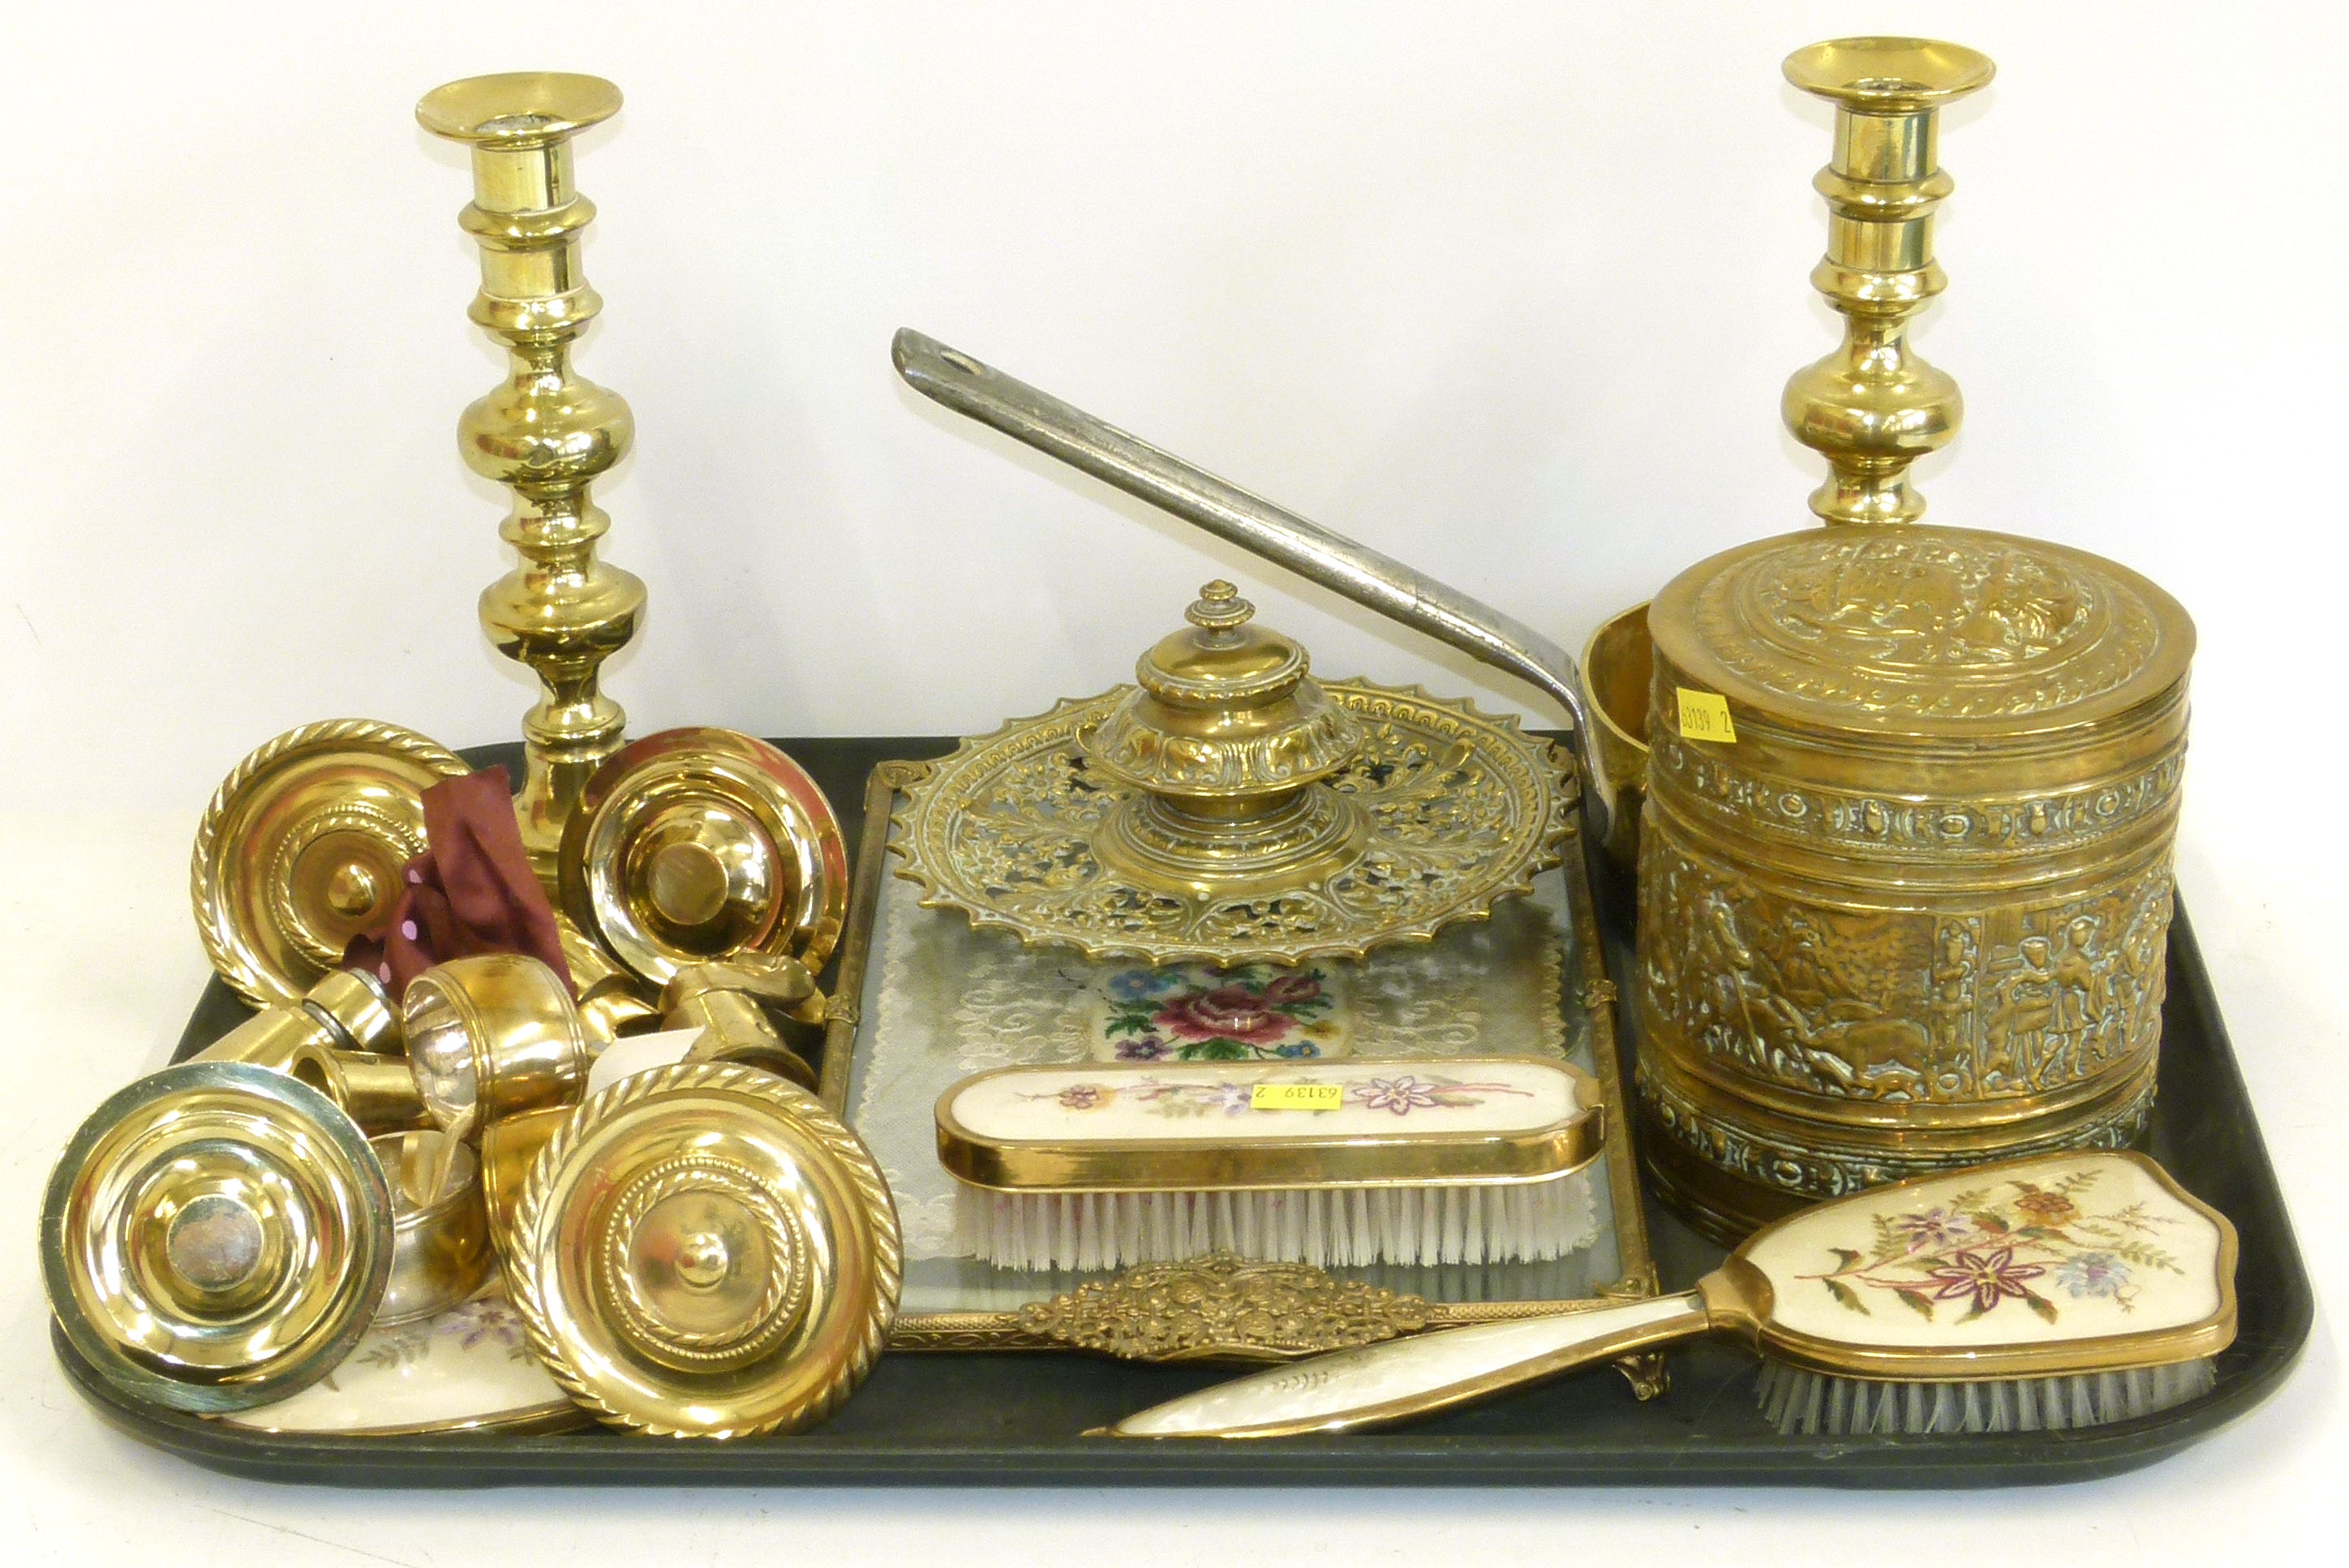 Lot 68 - A collection of brass to include a pair of candlesticks, saucepan, pierced inkwell, 4 castors,